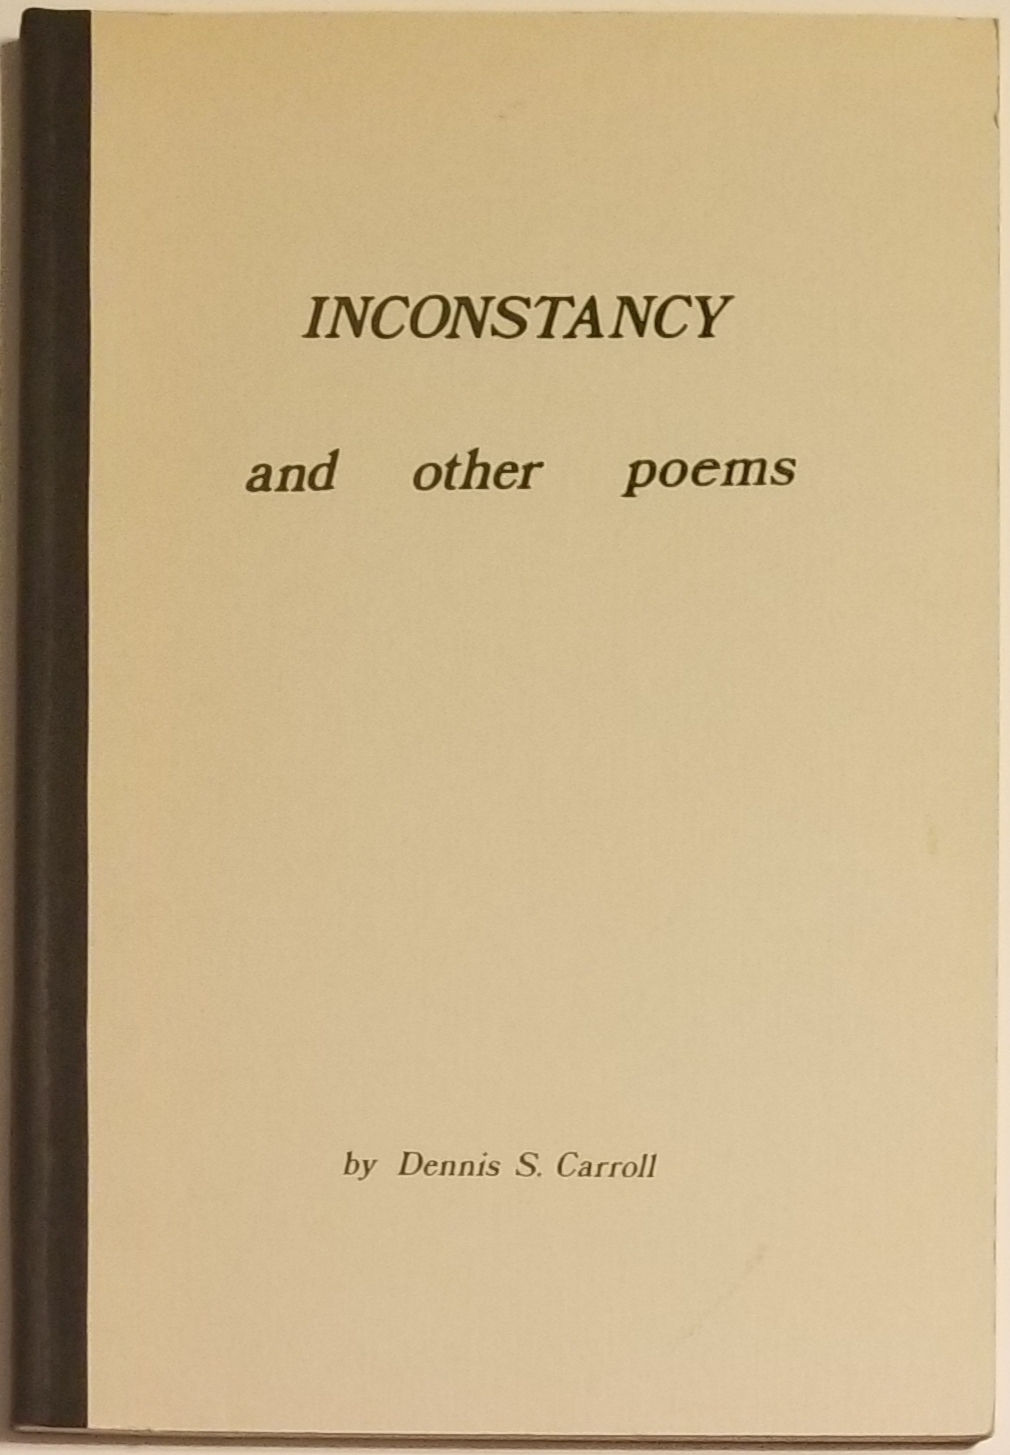 INCONSTANCY & Other Poems. Dennis S. Carroll.